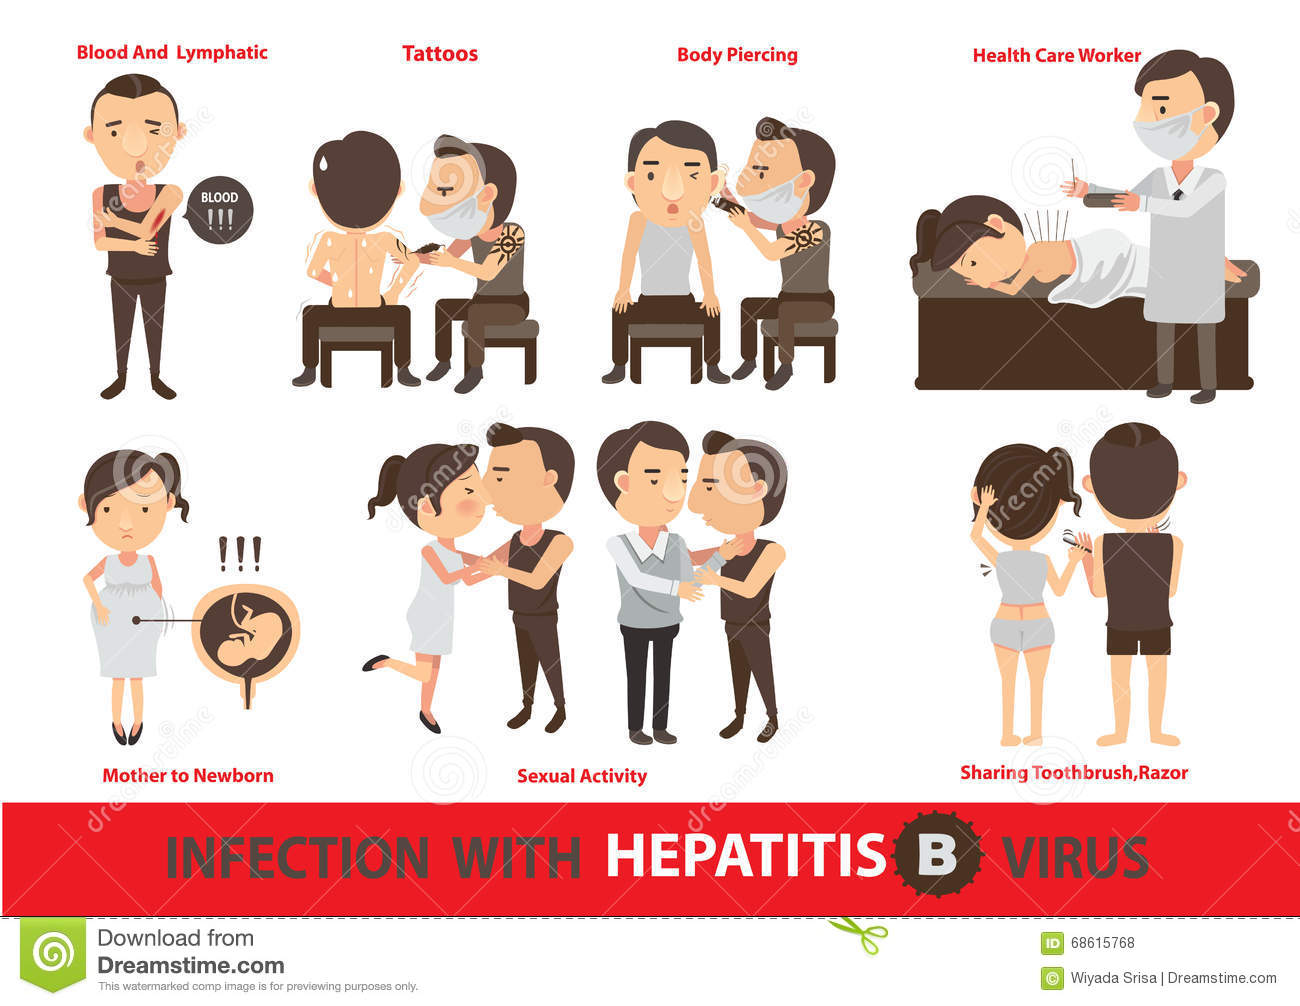 an analysis of the symptoms and causes of hepatitis b And each causes different symptoms  (wilkins 45) the hepatitis b virus causes hepatitis b infection  research analysis.